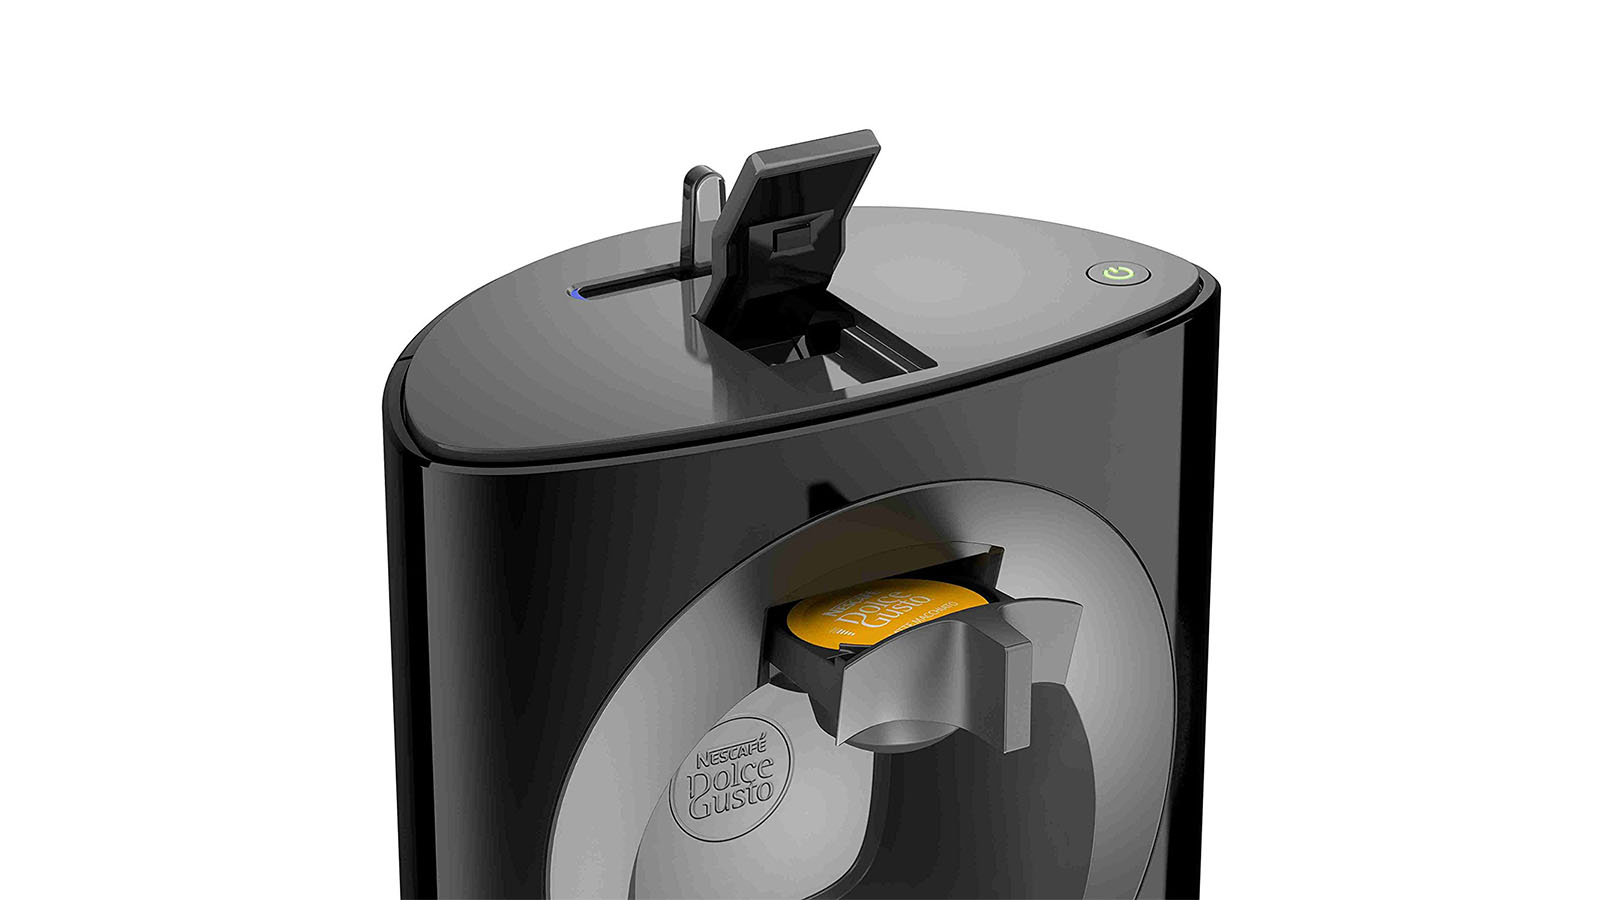 nescafe dolce gusto oblo coffee machine by krups review. Black Bedroom Furniture Sets. Home Design Ideas